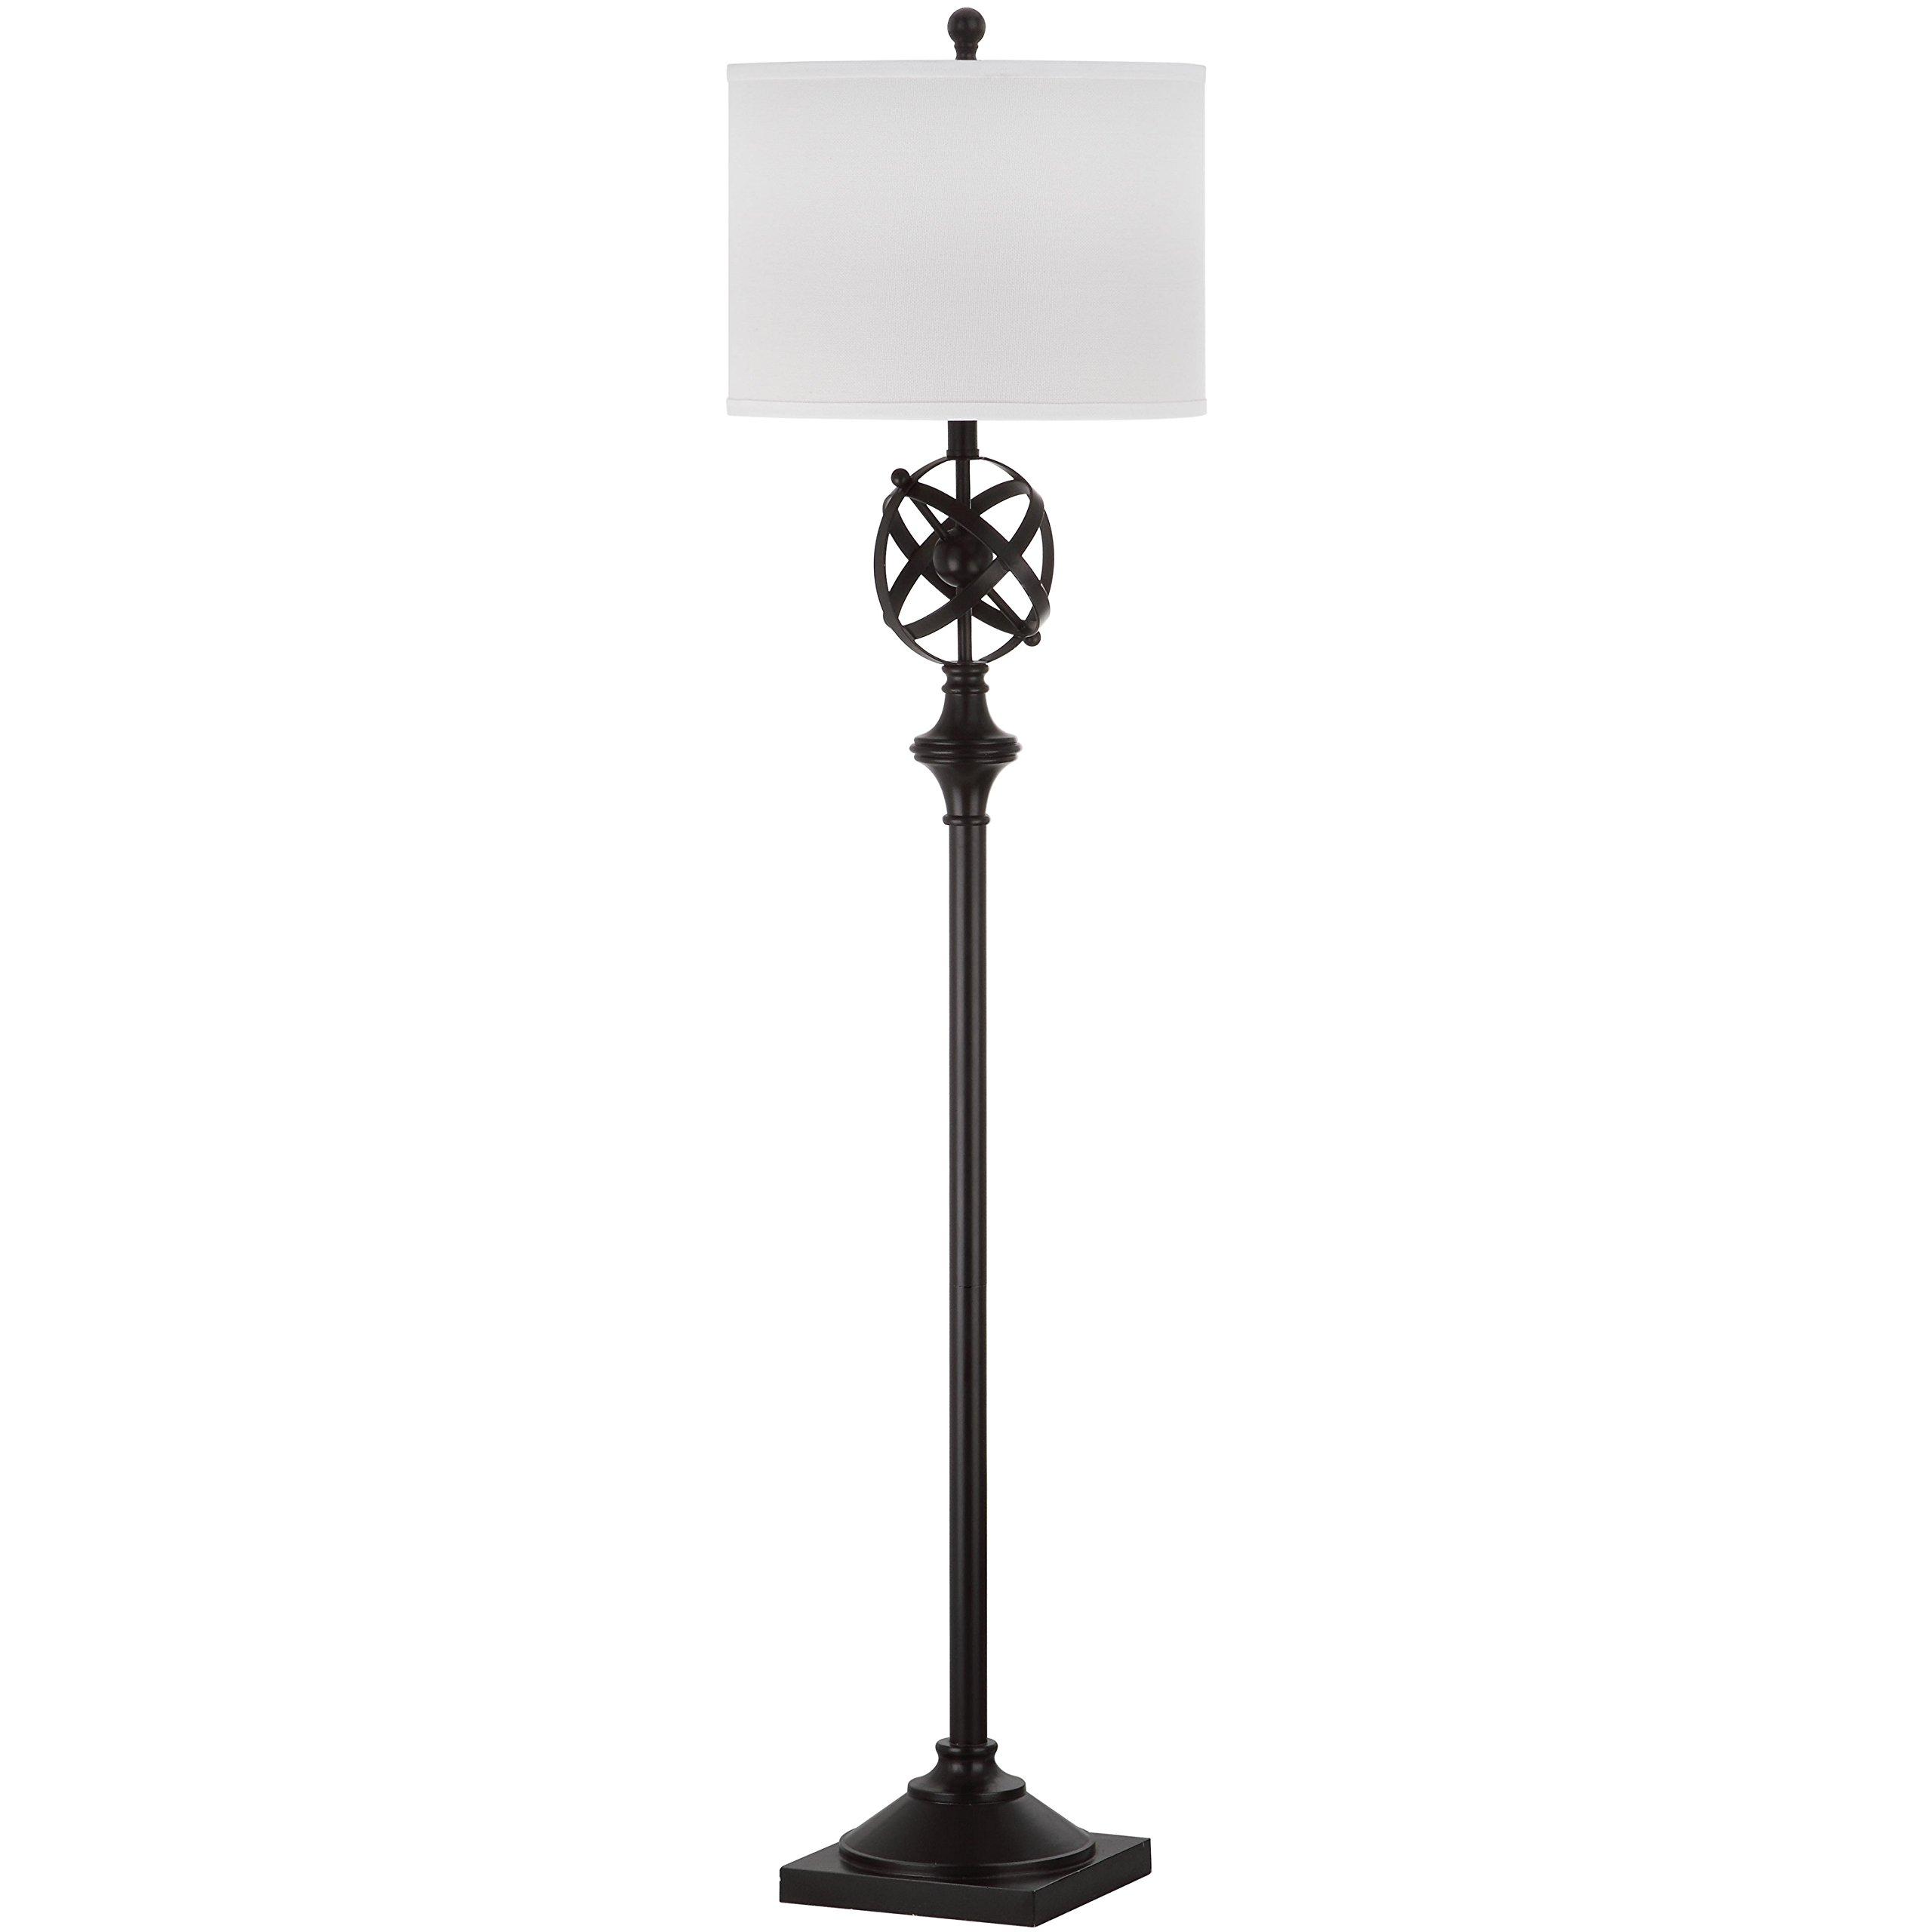 Safavieh Lighting Collection Franklin Armillary Oil-Rubbed Bronze 60-inch Floor Lamp